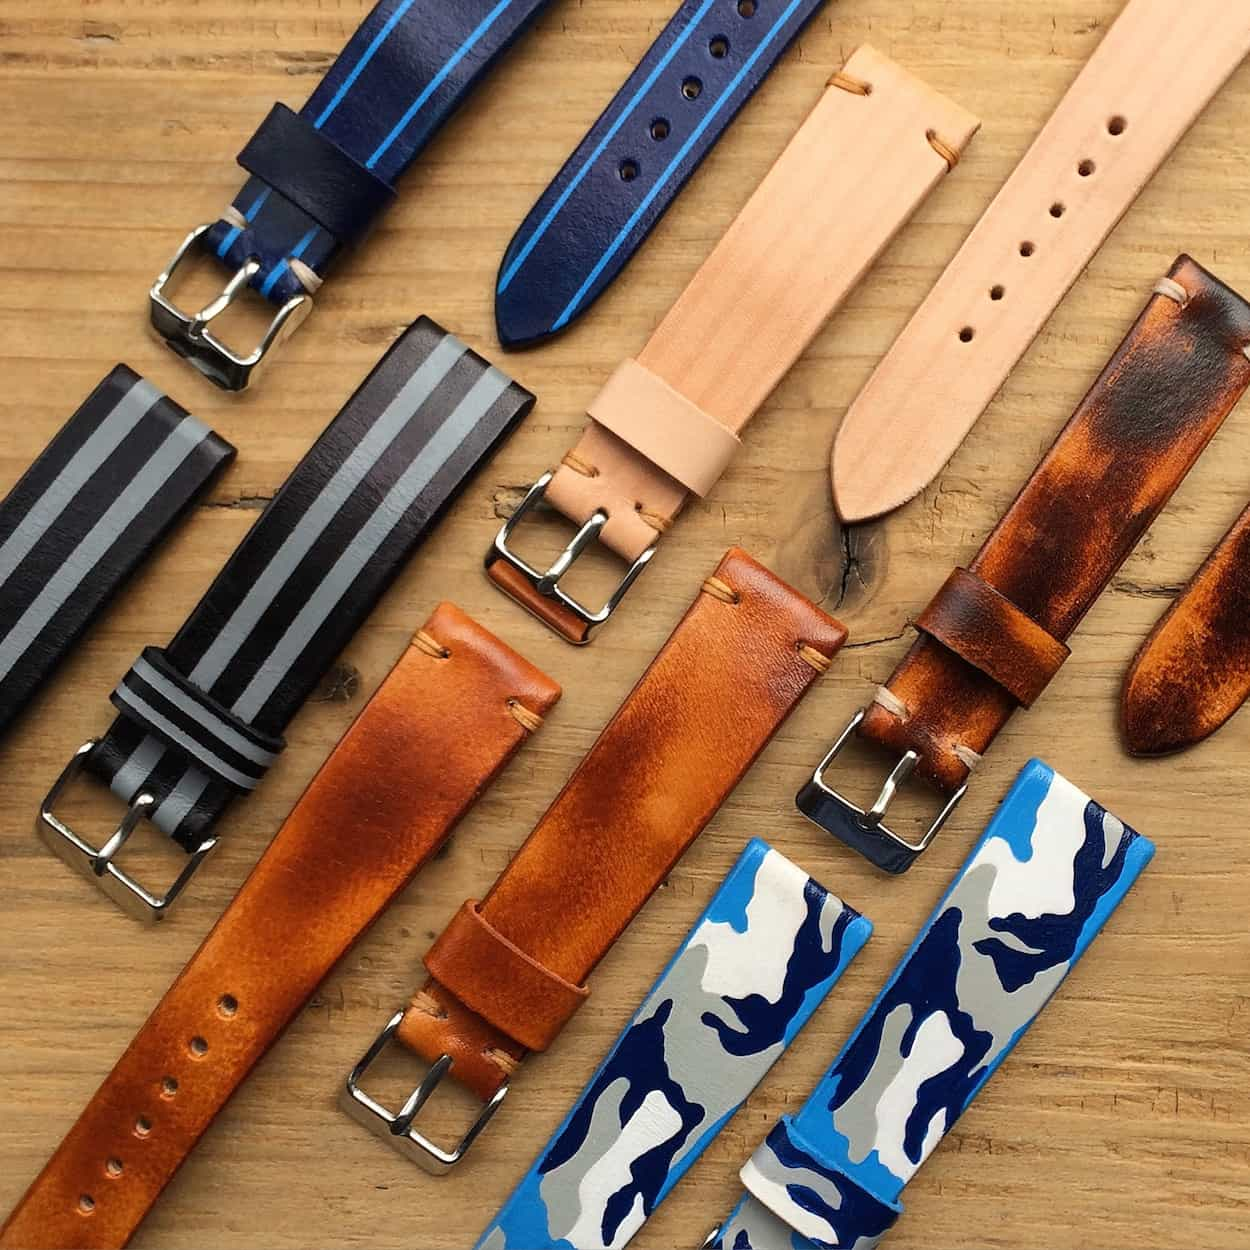 BCatt watch straps in a wide variety